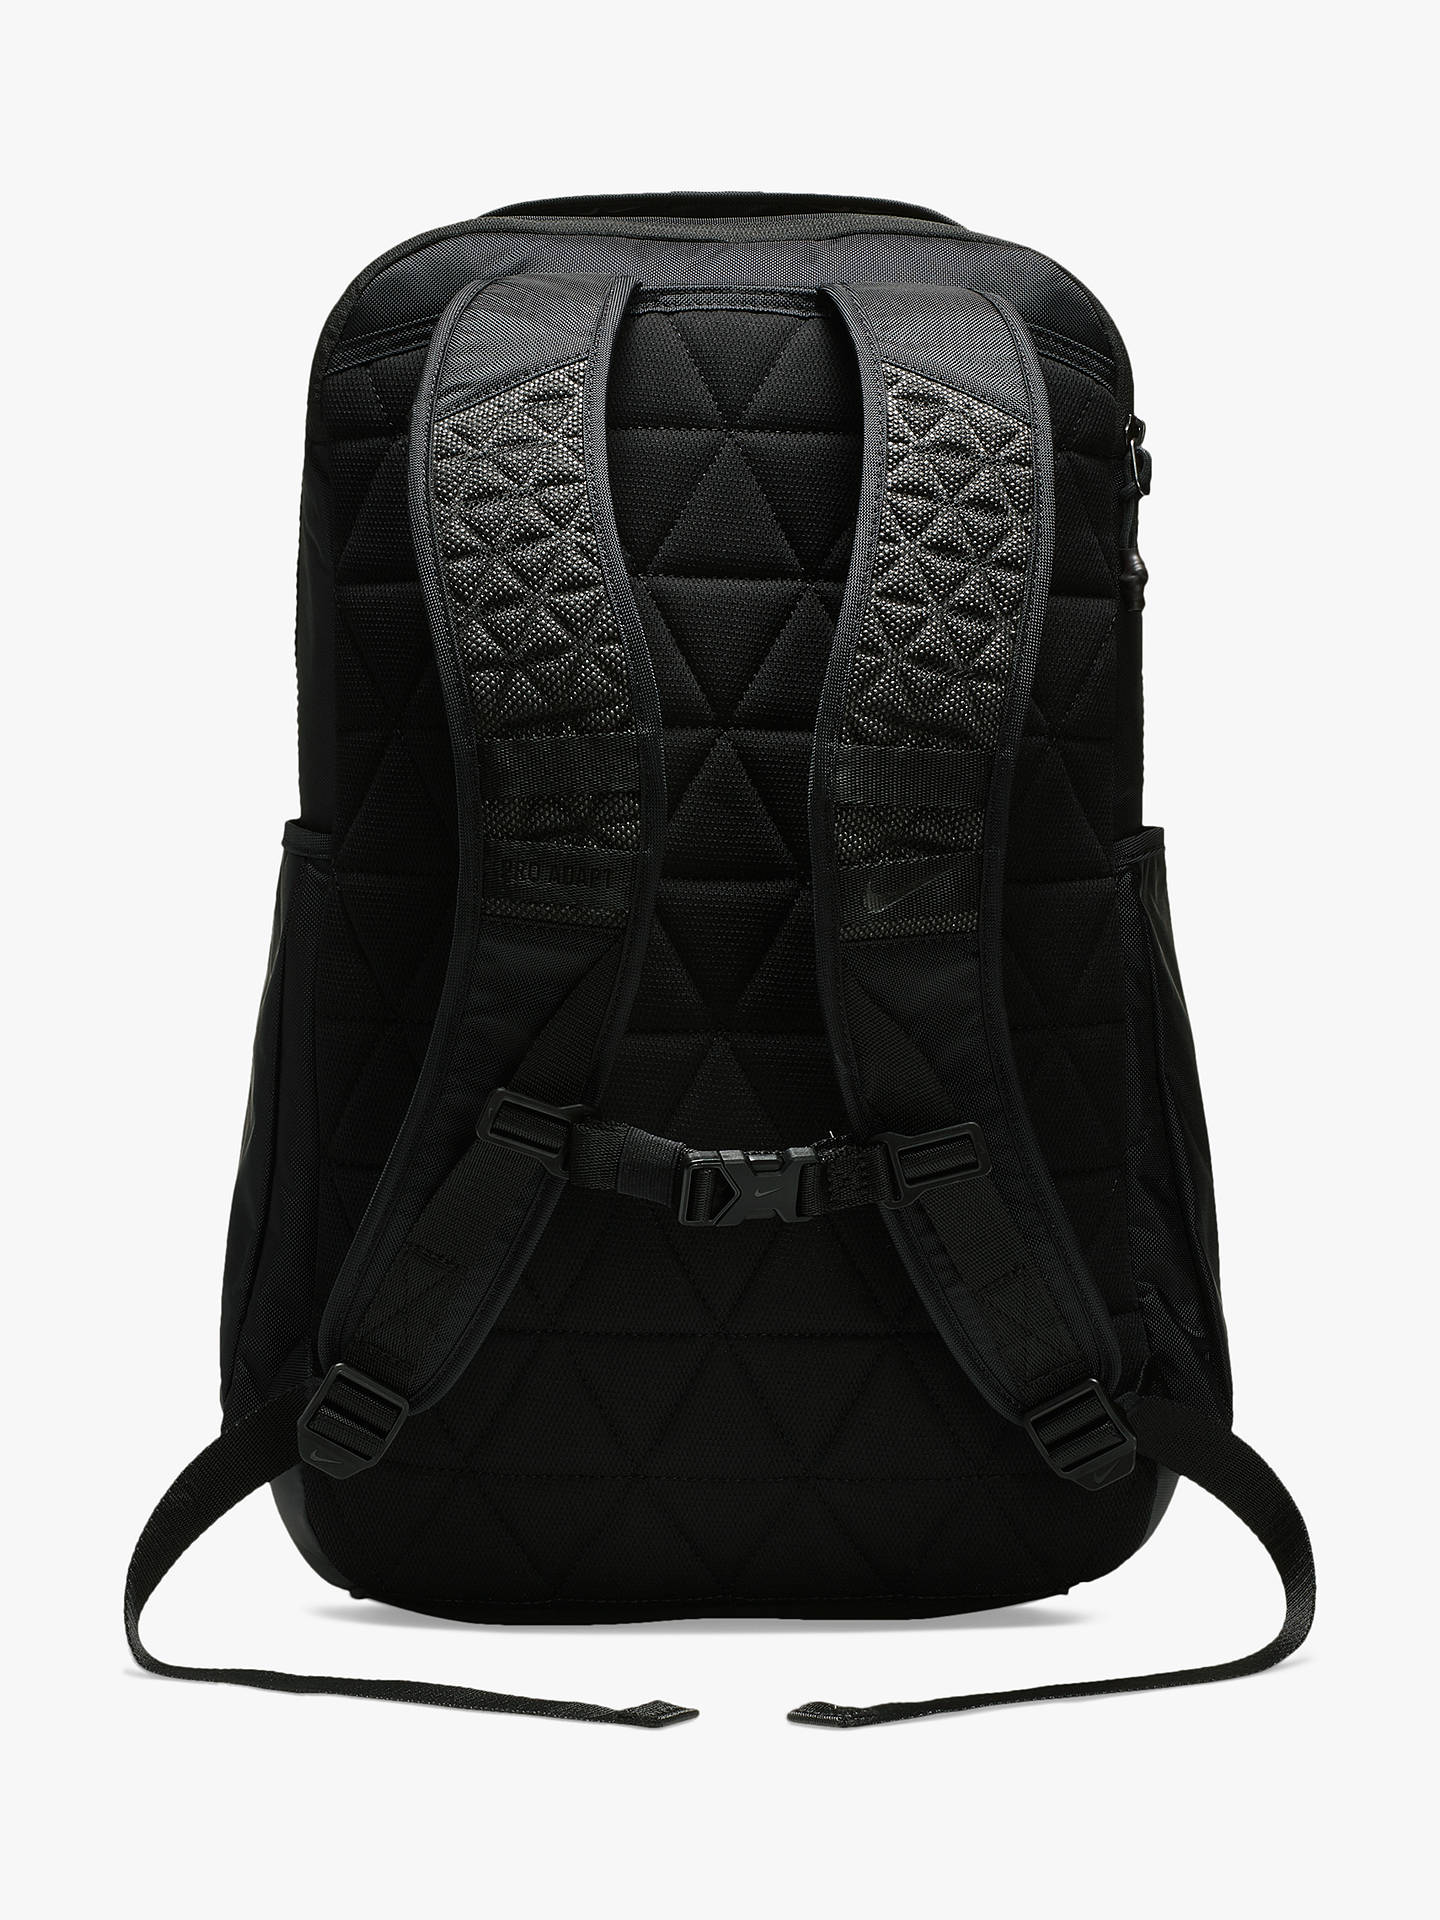 7b83248e4096c Buy Nike Vapor Power 2.0 Training Backpack